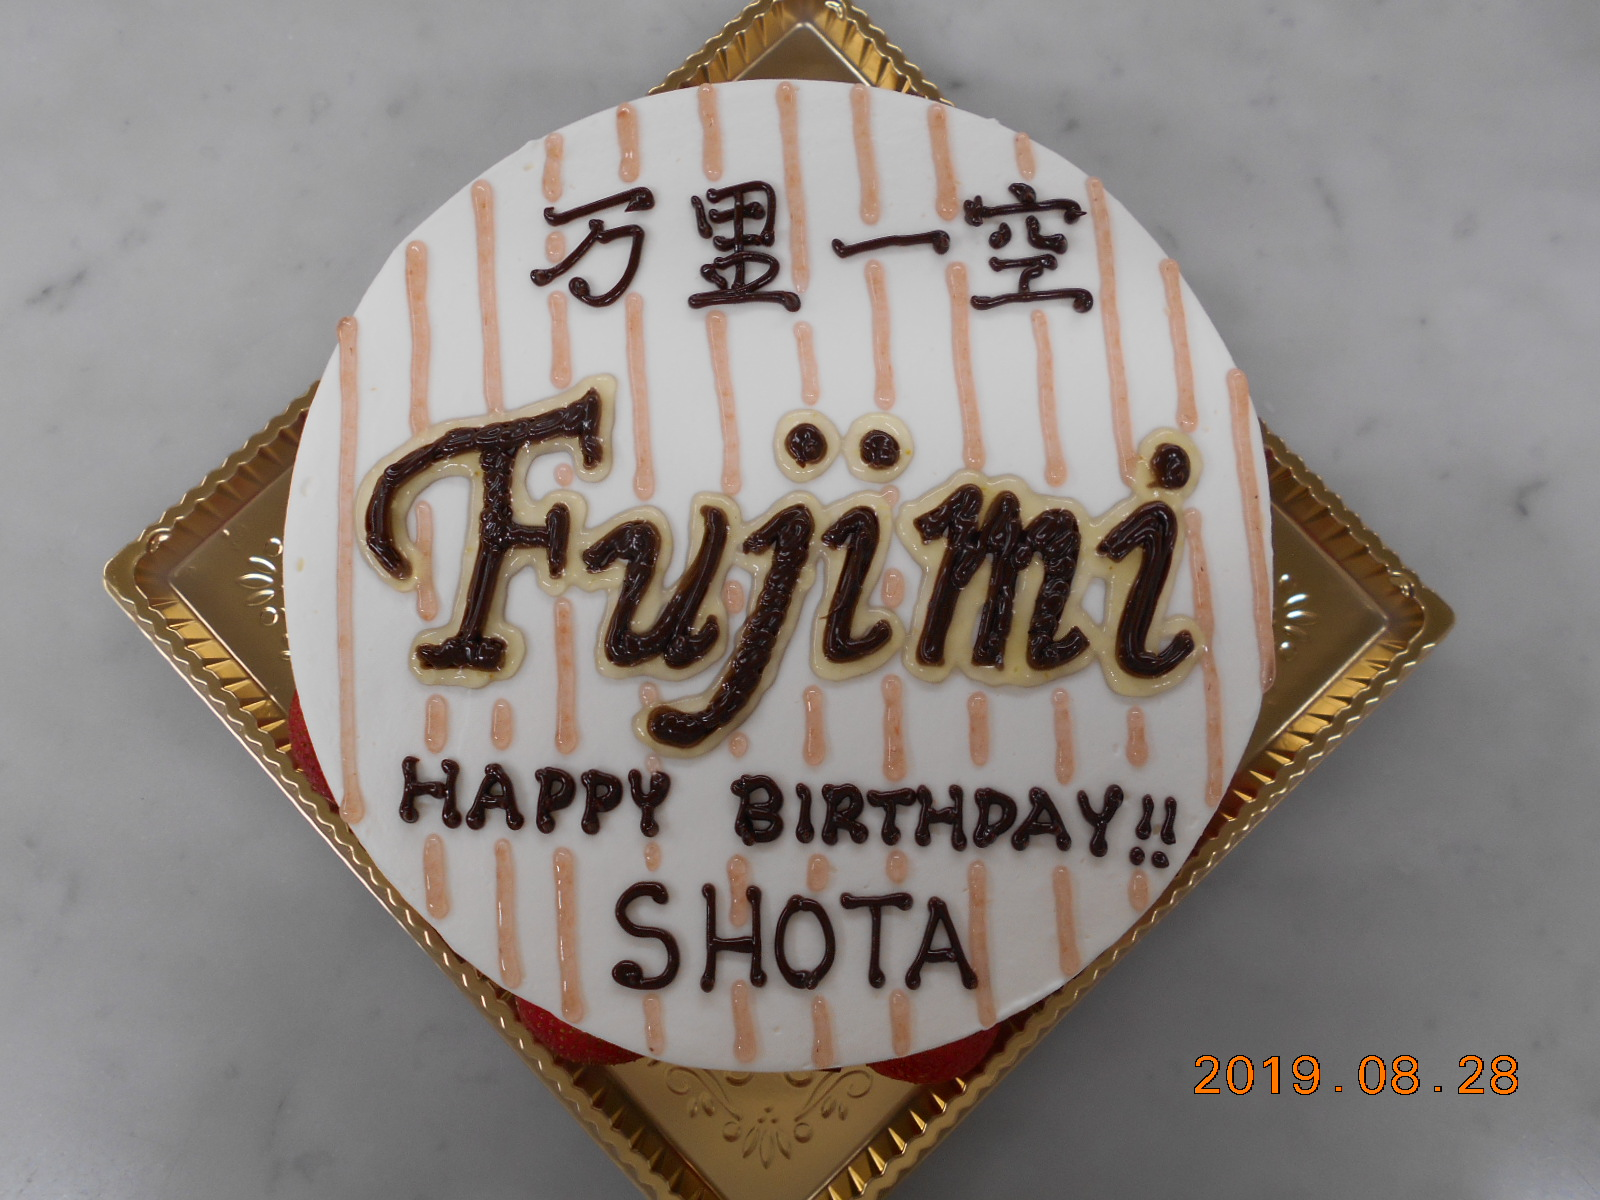 HAPPY BIRTHDAY!! SHOTA